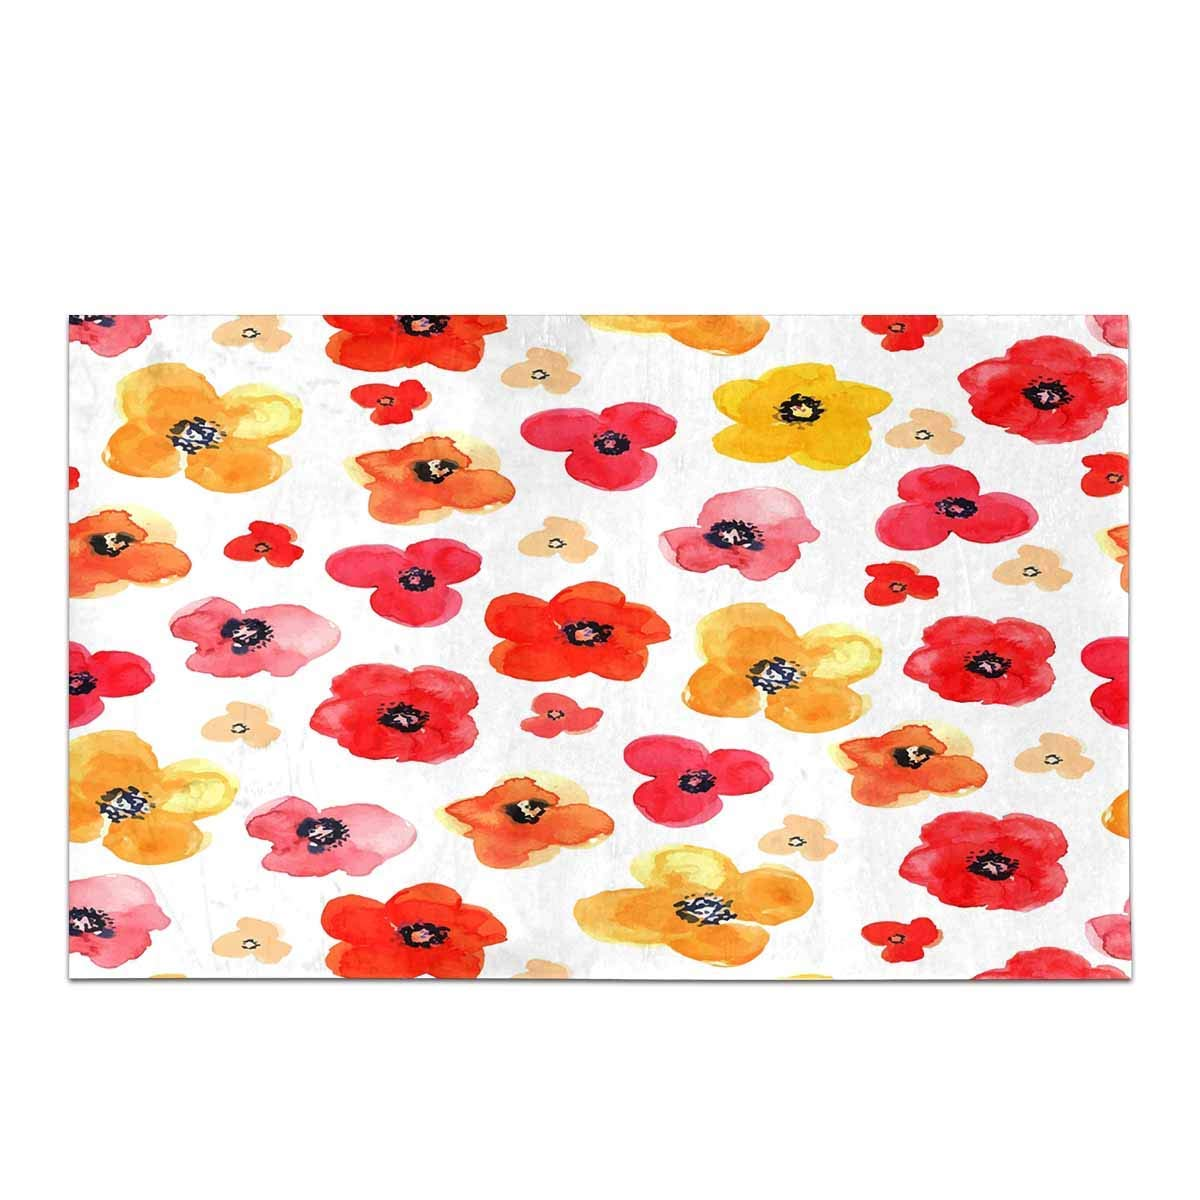 Fl Red And Yellow Isolated Poppies Kitchen Mat Bathroom Rugs Non Slip Home Entrance Floor Doormat In From Garden On Aliexpress Alibaba